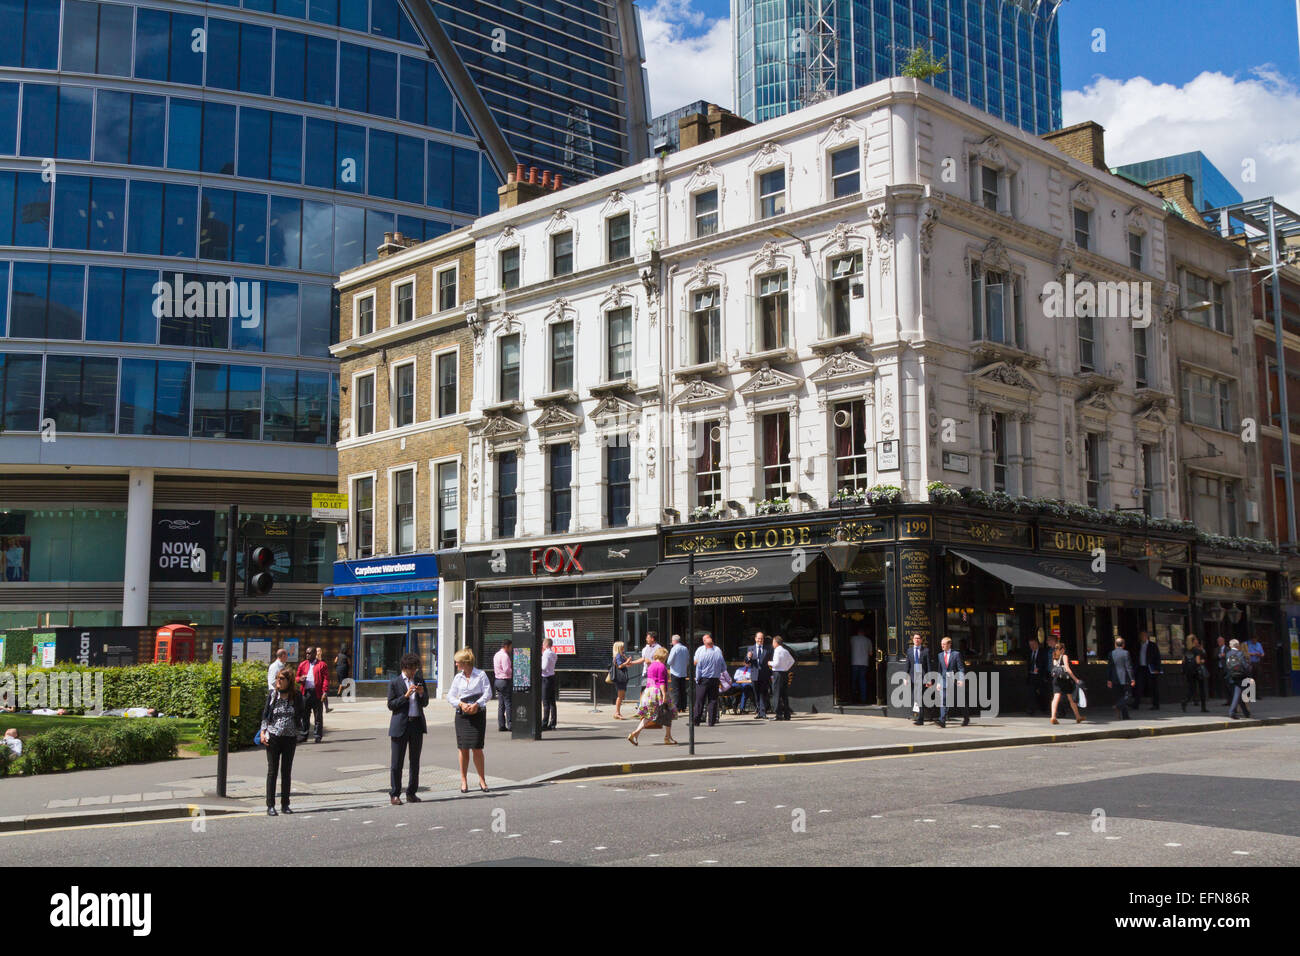 Globe pub at the junction of Moorgate and London Wall - Stock Image